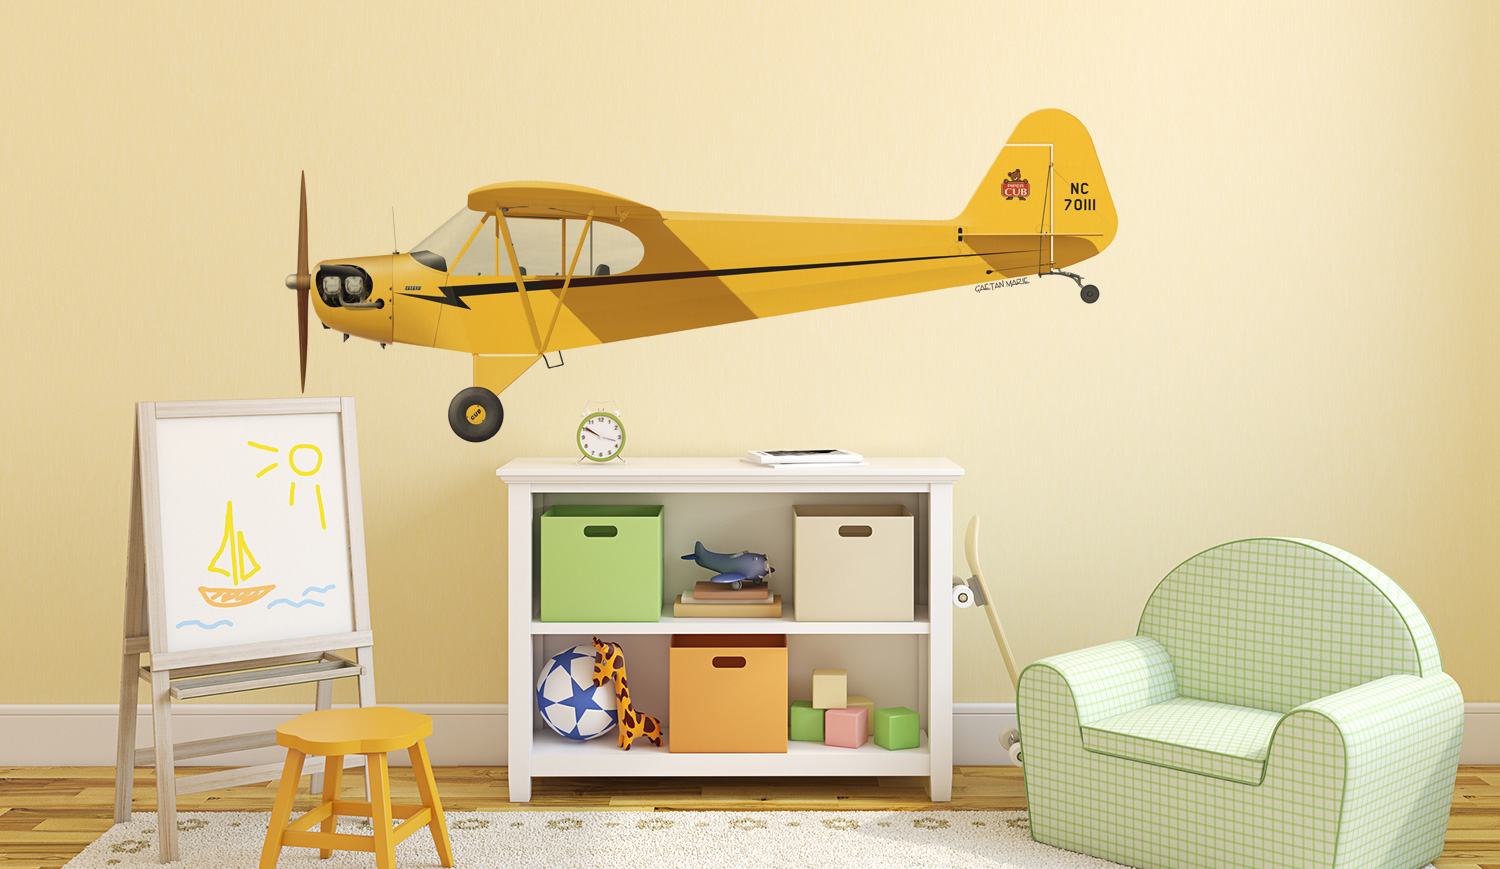 Fantastic Airplane Propeller Wall Decor Pictures Inspiration - The ...